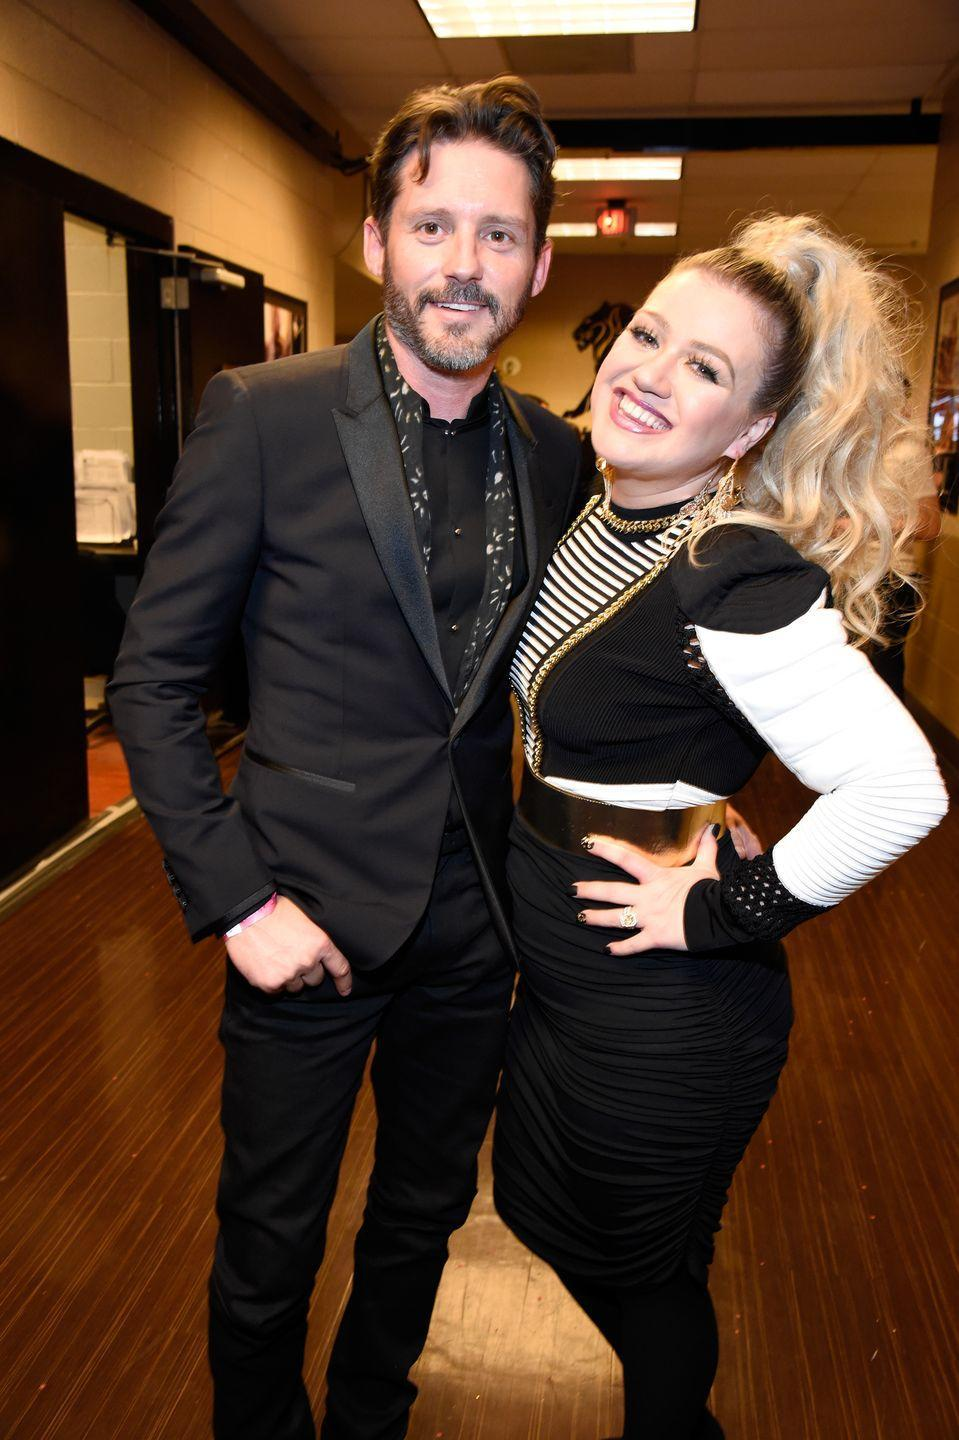 "<p>Truly did not think <a href=""https://www.cosmopolitan.com/entertainment/celebs/a32868863/kelly-clarkson-brandon-blackstock-relationship-divorce-timeline/"" rel=""nofollow noopener"" target=""_blank"" data-ylk=""slk:Kelly Clarkson and Brandon Blackstock"" class=""link rapid-noclick-resp"">Kelly Clarkson and Brandon Blackstock</a>'s breakup would get so messy, but it went from zero to 100 real quick. <a href=""https://www.cosmopolitan.com/entertainment/celebs/a32841772/kelly-clarkson-brandon-blackstock-divorce/"" rel=""nofollow noopener"" target=""_blank"" data-ylk=""slk:Kelly filed for divorce from Brandon in June"" class=""link rapid-noclick-resp"">Kelly filed for divorce from Brandon in June</a> after seven years of marriage, and things got complicated recently in court. <a href=""https://www.complex.com/pop-culture/2020/12/kelly-clarkson-ex-husband-asking-436000-spousal-child-support#:~:text=Brandon%20Blackstock%20is%20asking%20the,of%20%24436%2C000%20every%20single%20month."" rel=""nofollow noopener"" target=""_blank"" data-ylk=""slk:Brandon asked for $436,000 in spousal and child support money"" class=""link rapid-noclick-resp"">Brandon asked for $436,000 in spousal and child support money</a>, and now <a href=""https://www.cosmopolitan.com/entertainment/celebs/a34942053/kelly-clarkson-brandon-blackstock-defrauded-millions/"" rel=""nofollow noopener"" target=""_blank"" data-ylk=""slk:Kelly's claiming he defrauded her of out of millions of dollars."" class=""link rapid-noclick-resp"">Kelly's claiming he defrauded her of out of millions of dollars.</a> Yikes.</p>"